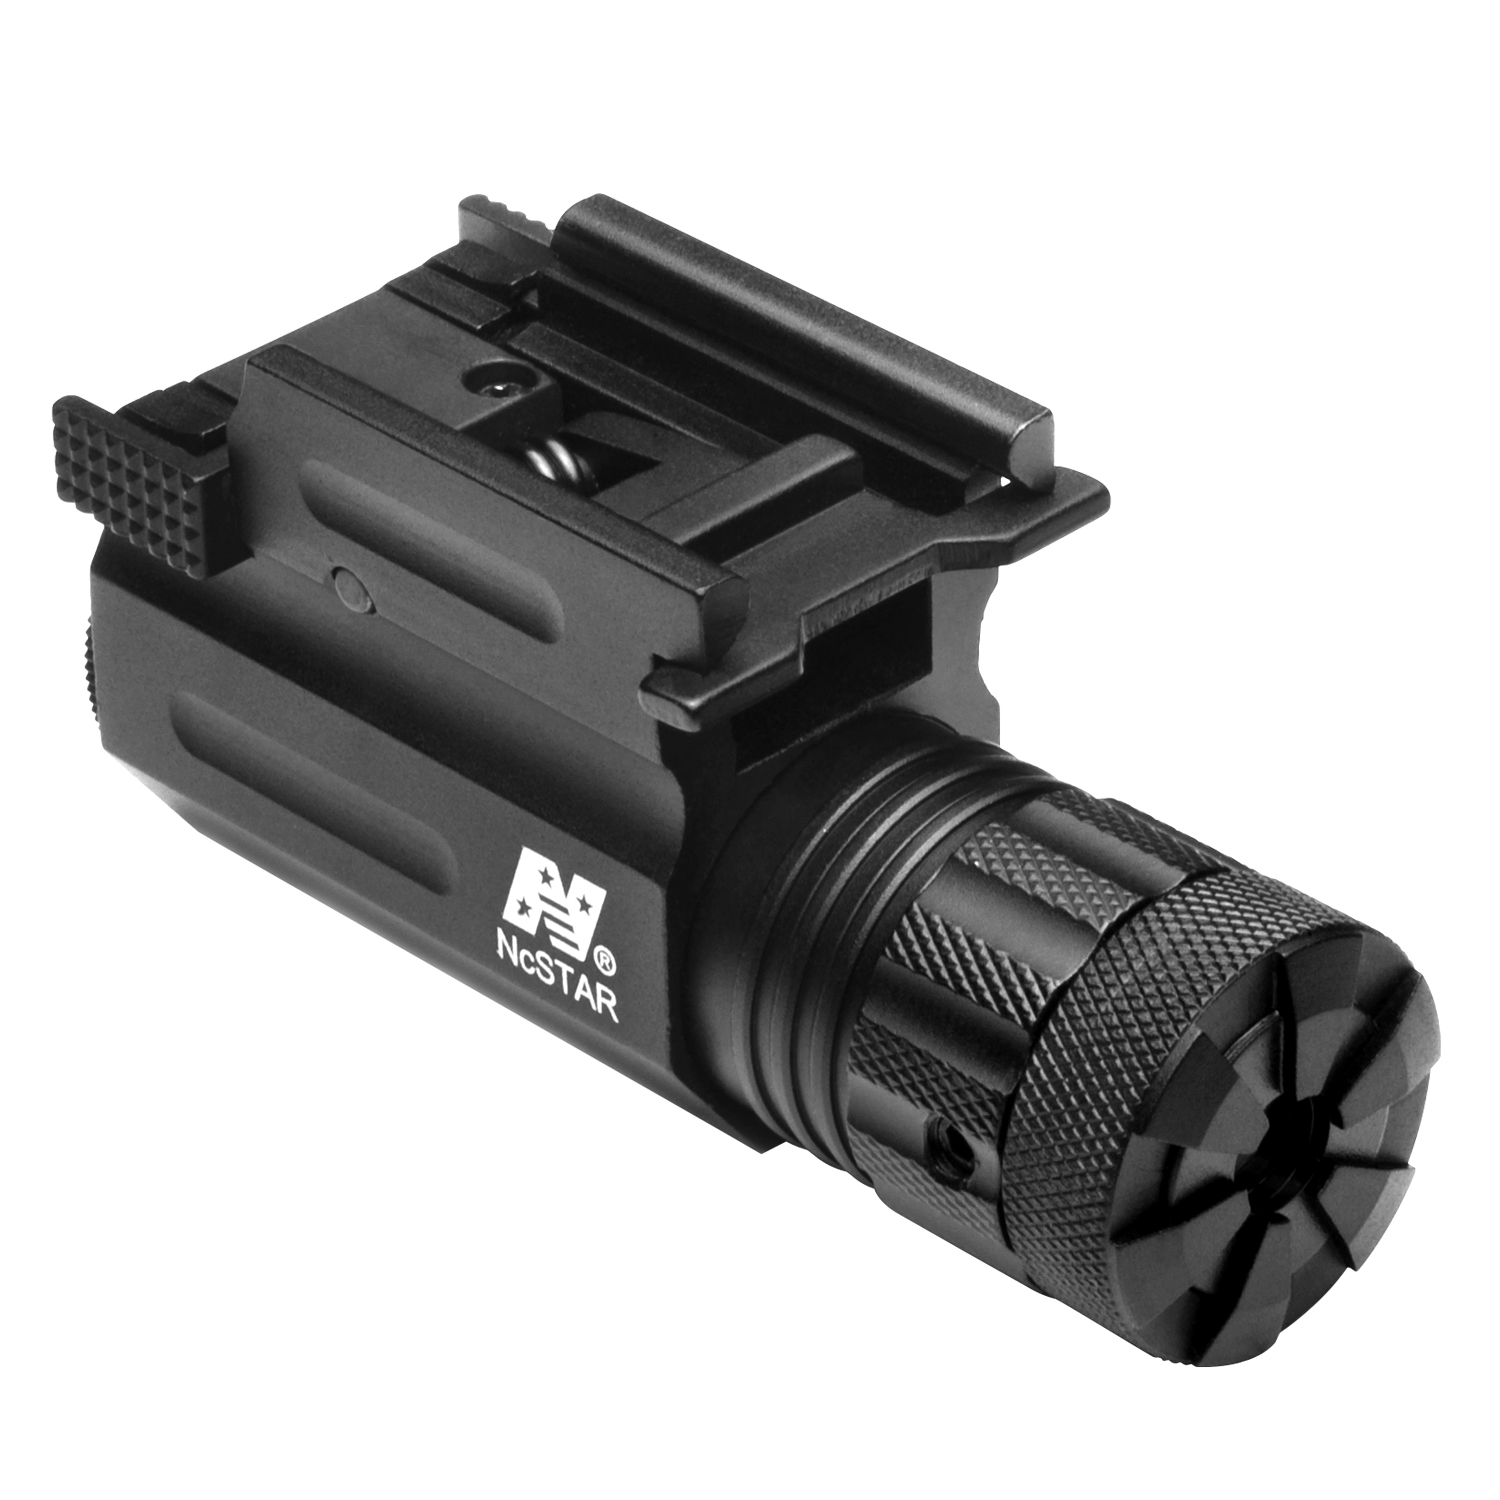 Ncstar Compact gun And Rifle Green Laser Sight